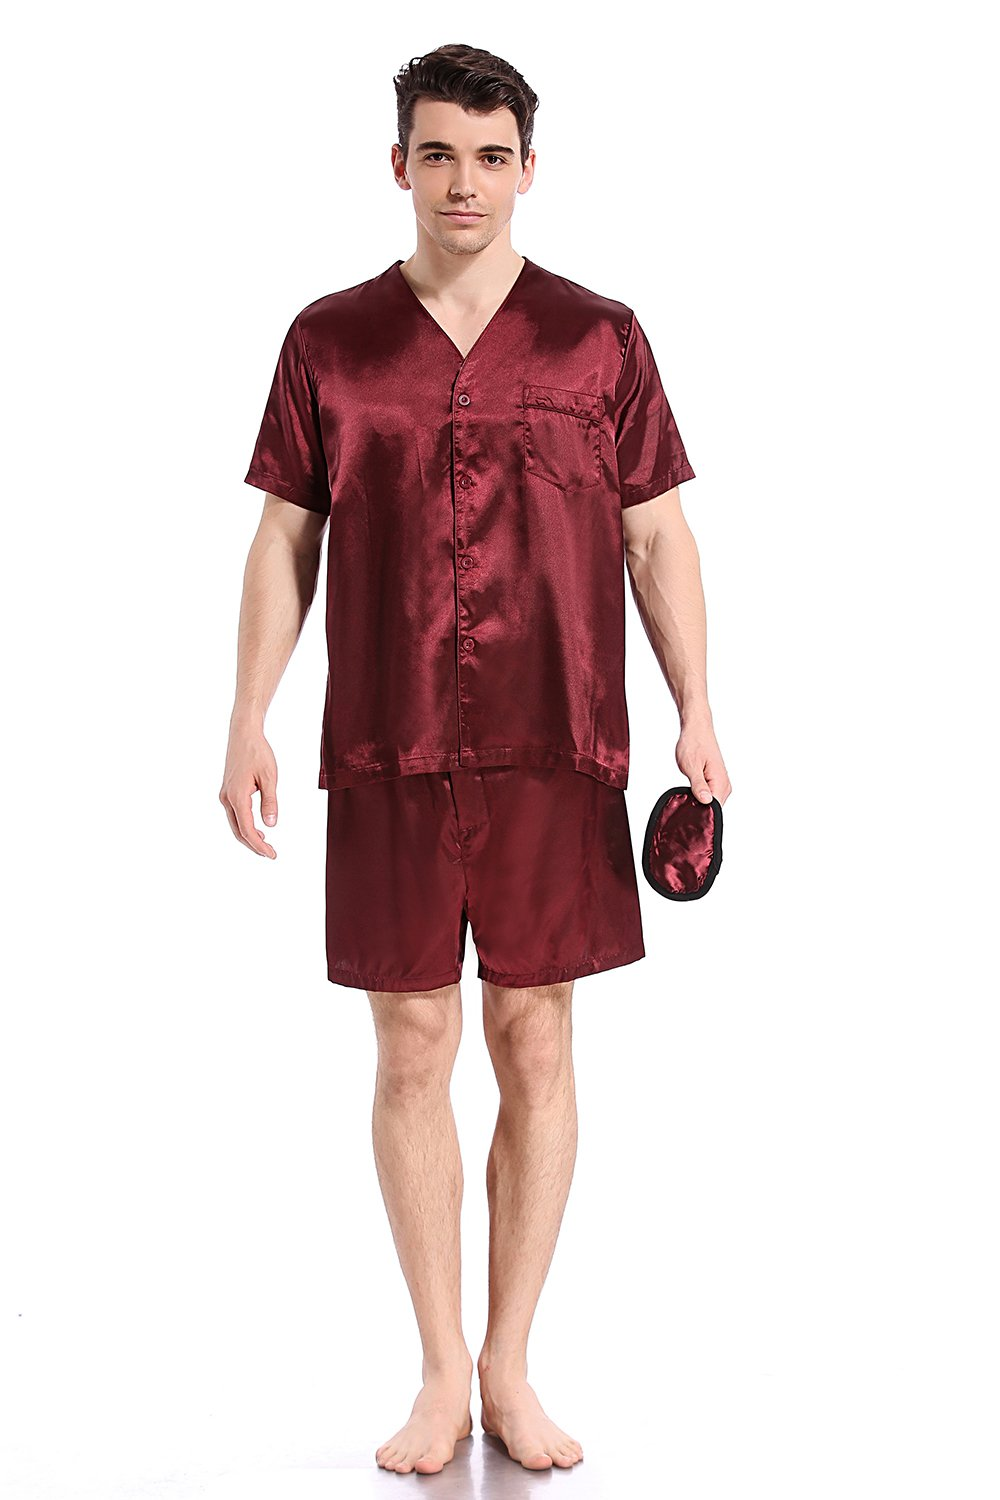 Like2sea Summer Silky Satin Pajamas for Men, Short V-Neck Button Down PJ Set with Mask, WineRed, S